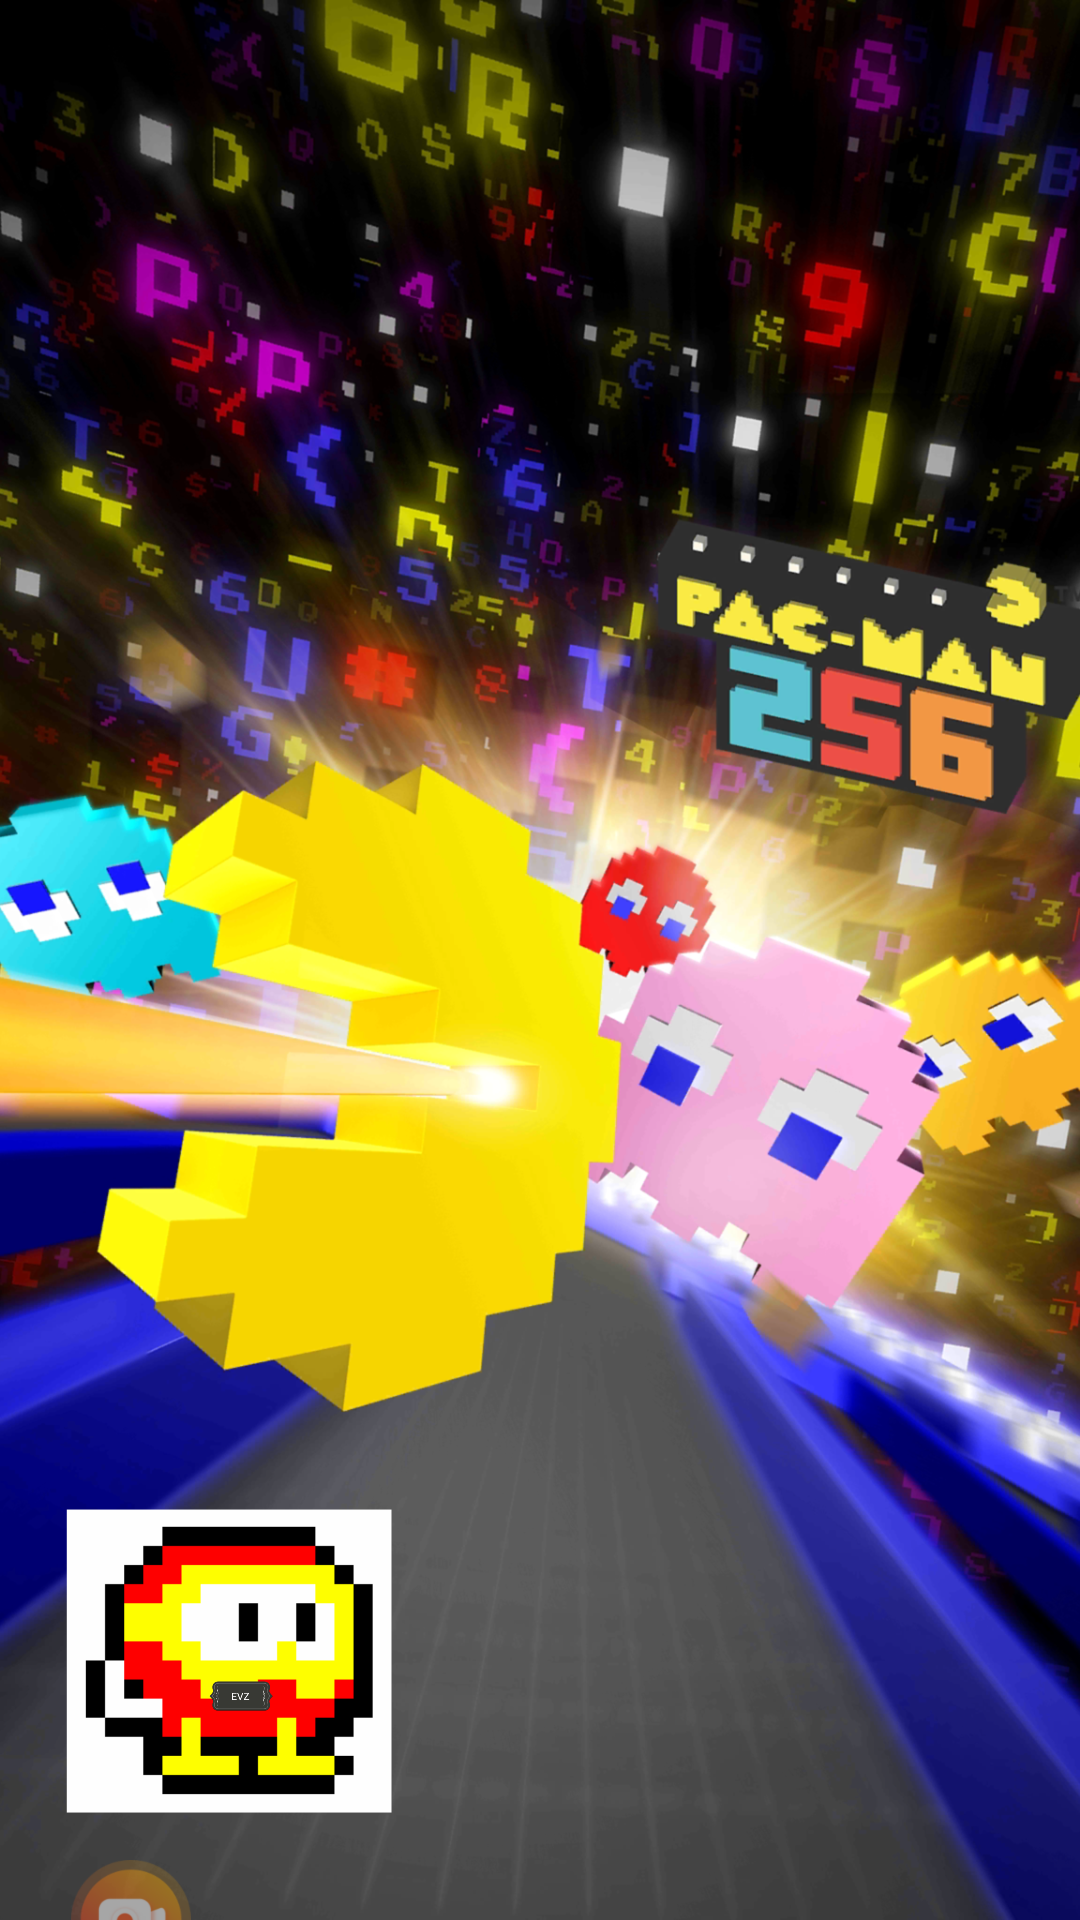 ministorm04: Pac-Man 256 [Mobile] (Android) 2,554 points on 2019-05-07 15:00:16